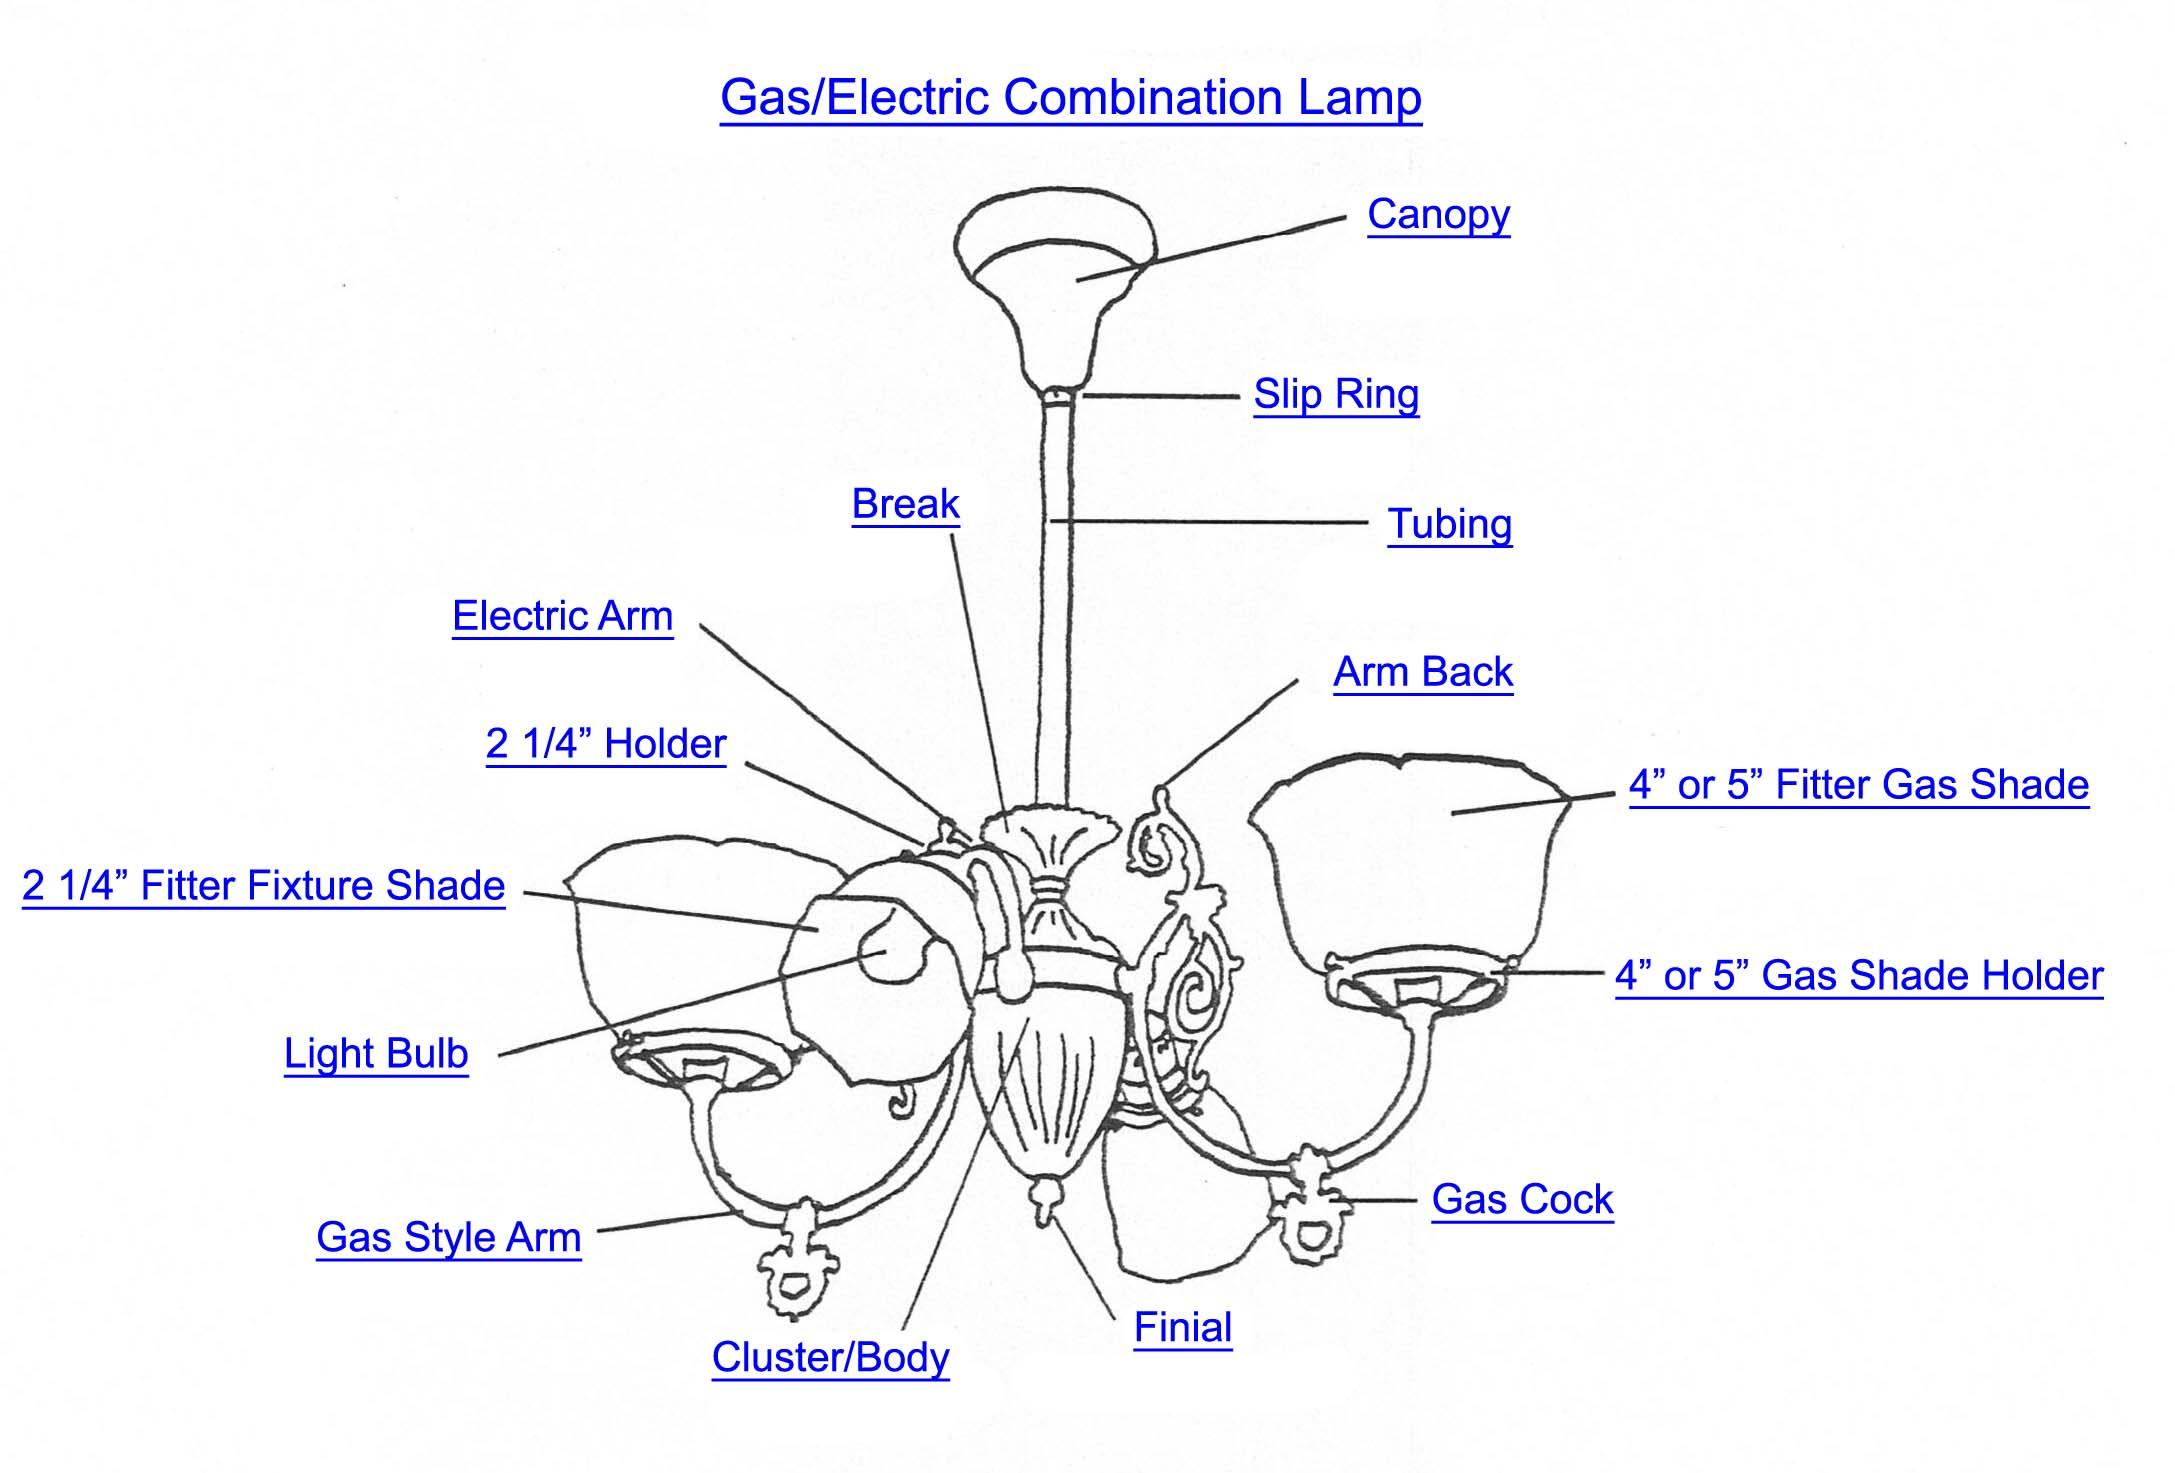 Gas electric combination lamp part index mozeypictures Gallery